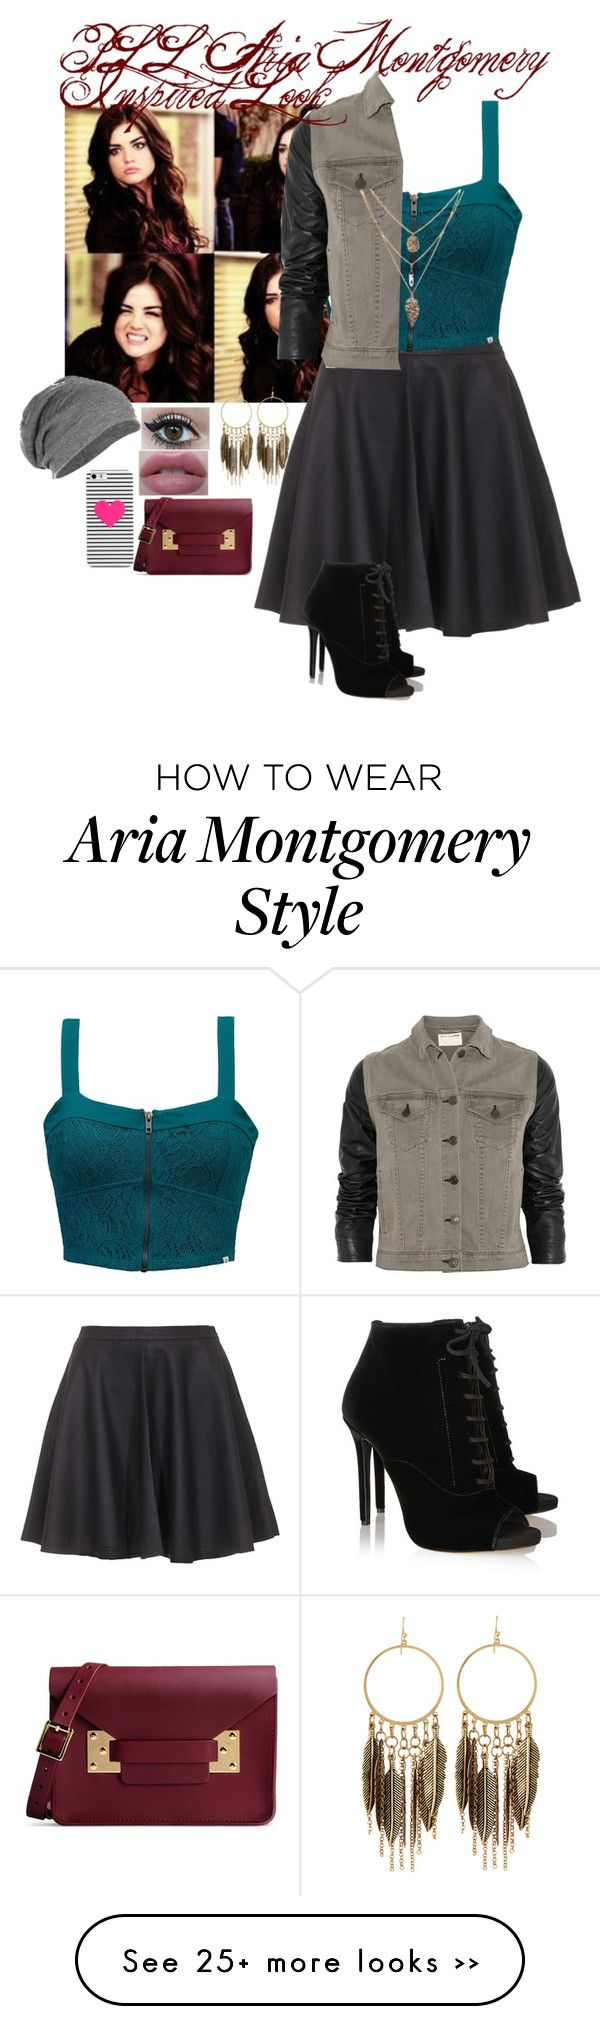 """PLL Aria Montgomery Inspired Look"" by pierangelisvalerio on Polyvore"